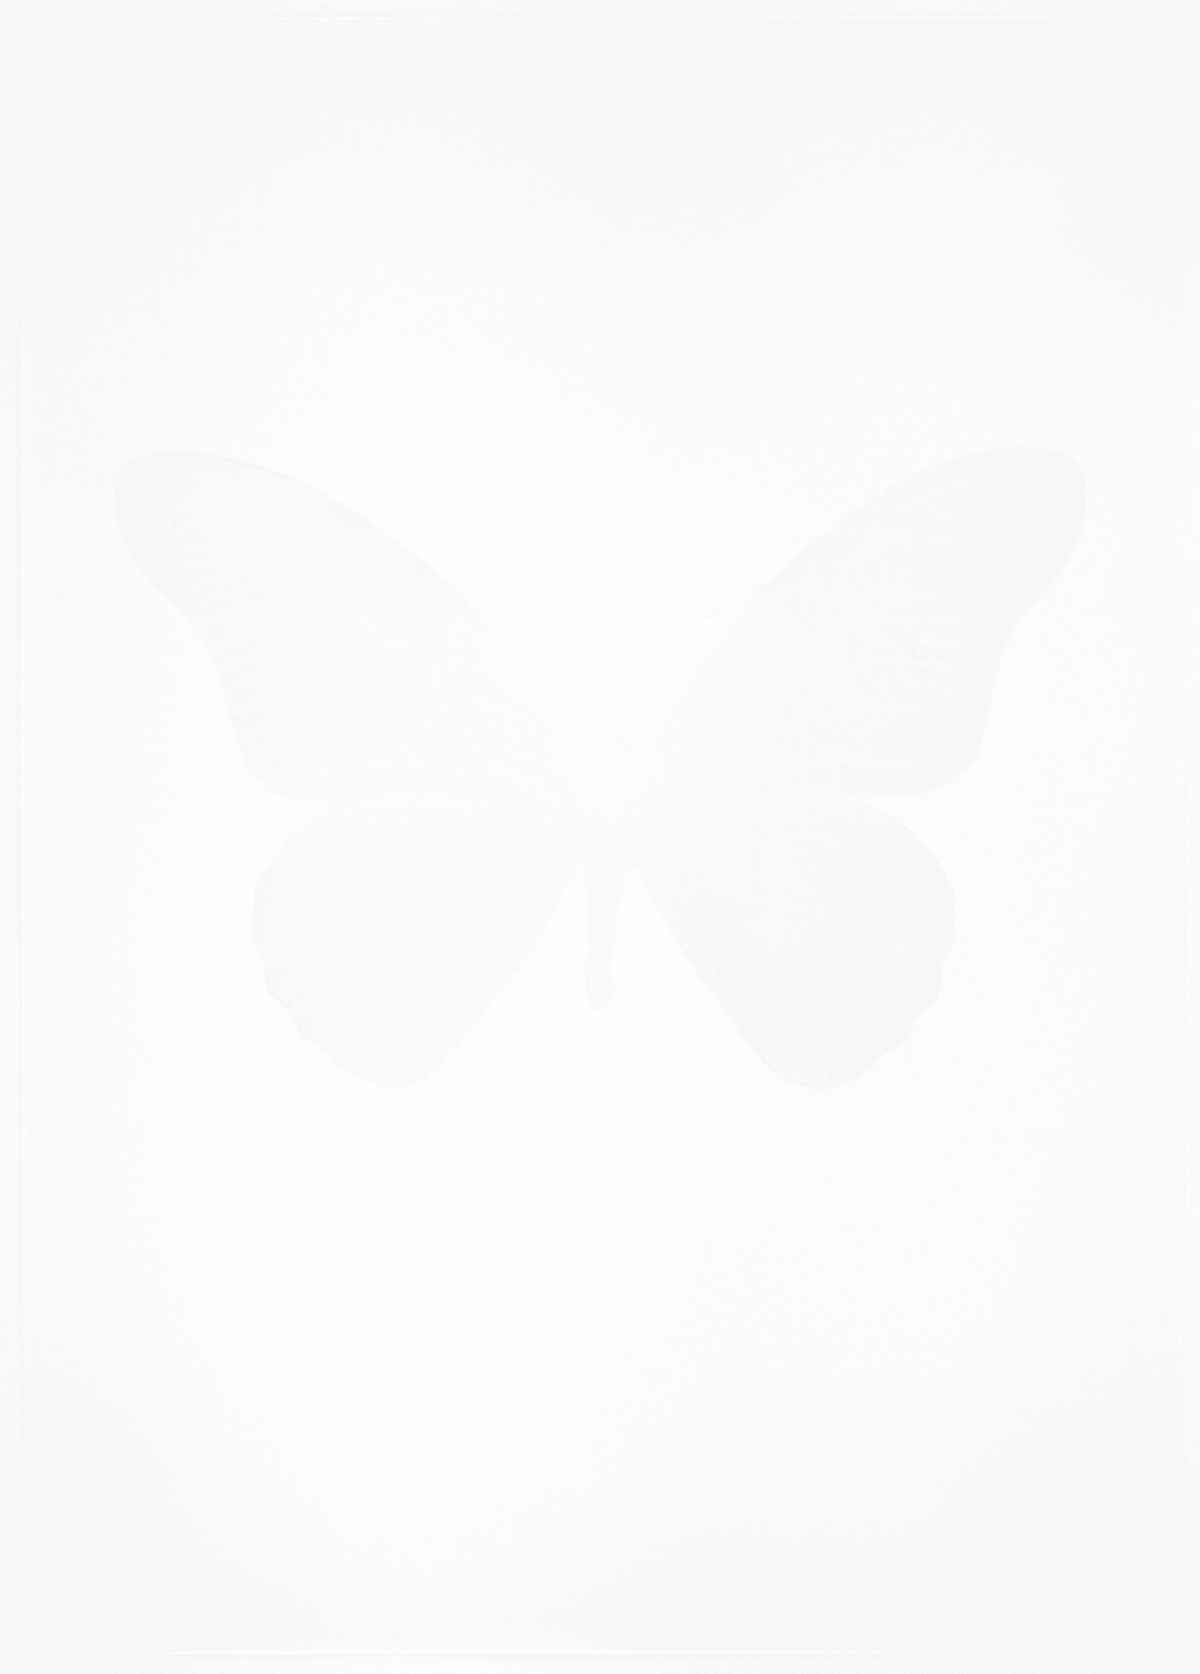 Damien Hirst The Souls IV - Cotton White/Cotton White/Cotton White Damien Hirst butterfly foil print for sale Damien Hirst print for sale , 2010 1 colour foil block on 300gsm Arches 88 archival paper. Signed and numbered. Published by Paul Stolper and Other Criteria 72 x 51cm OC8047 /1418-70 Edition of 15